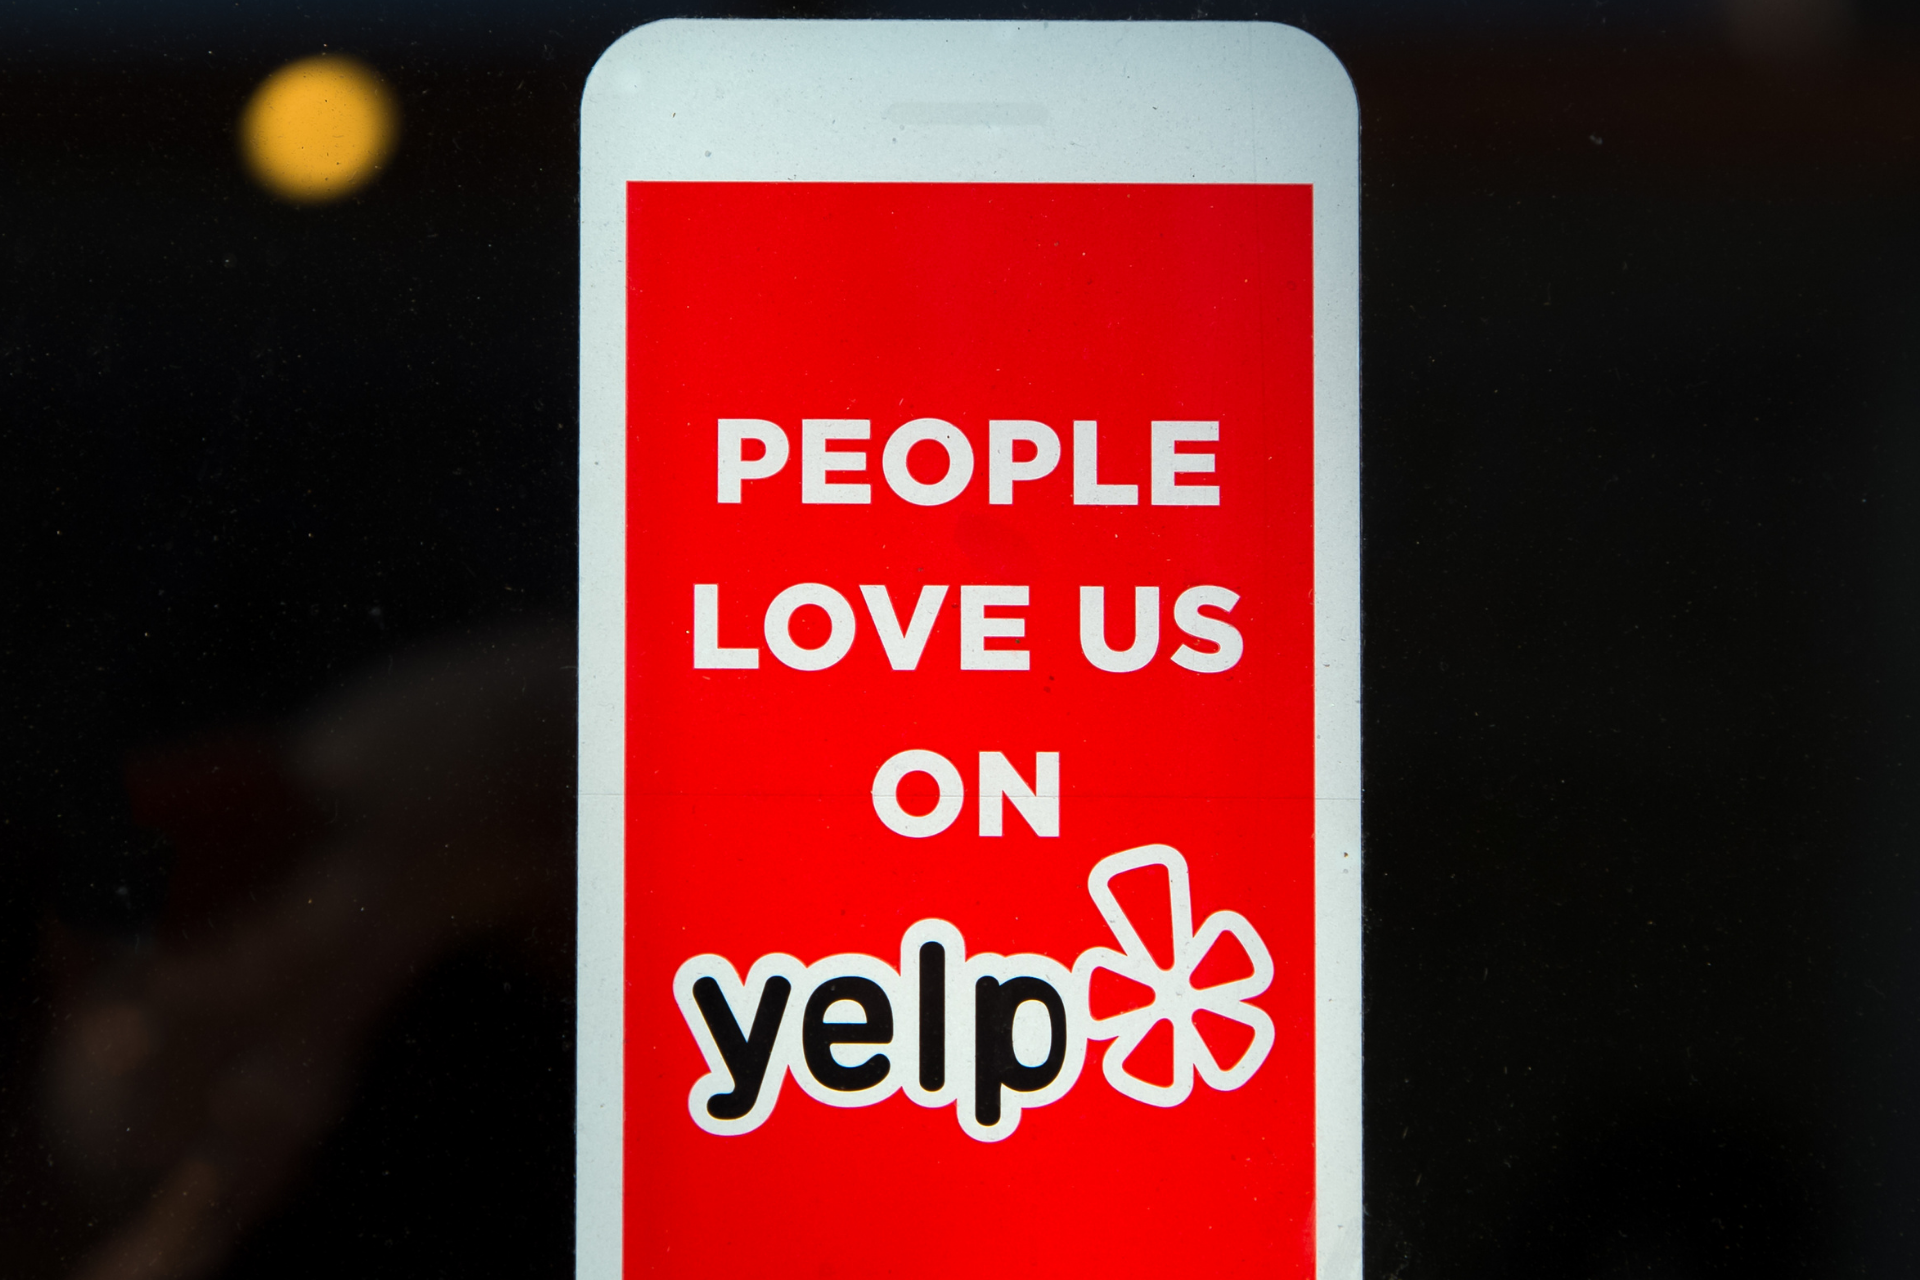 A sign displaying people love us on yelp.